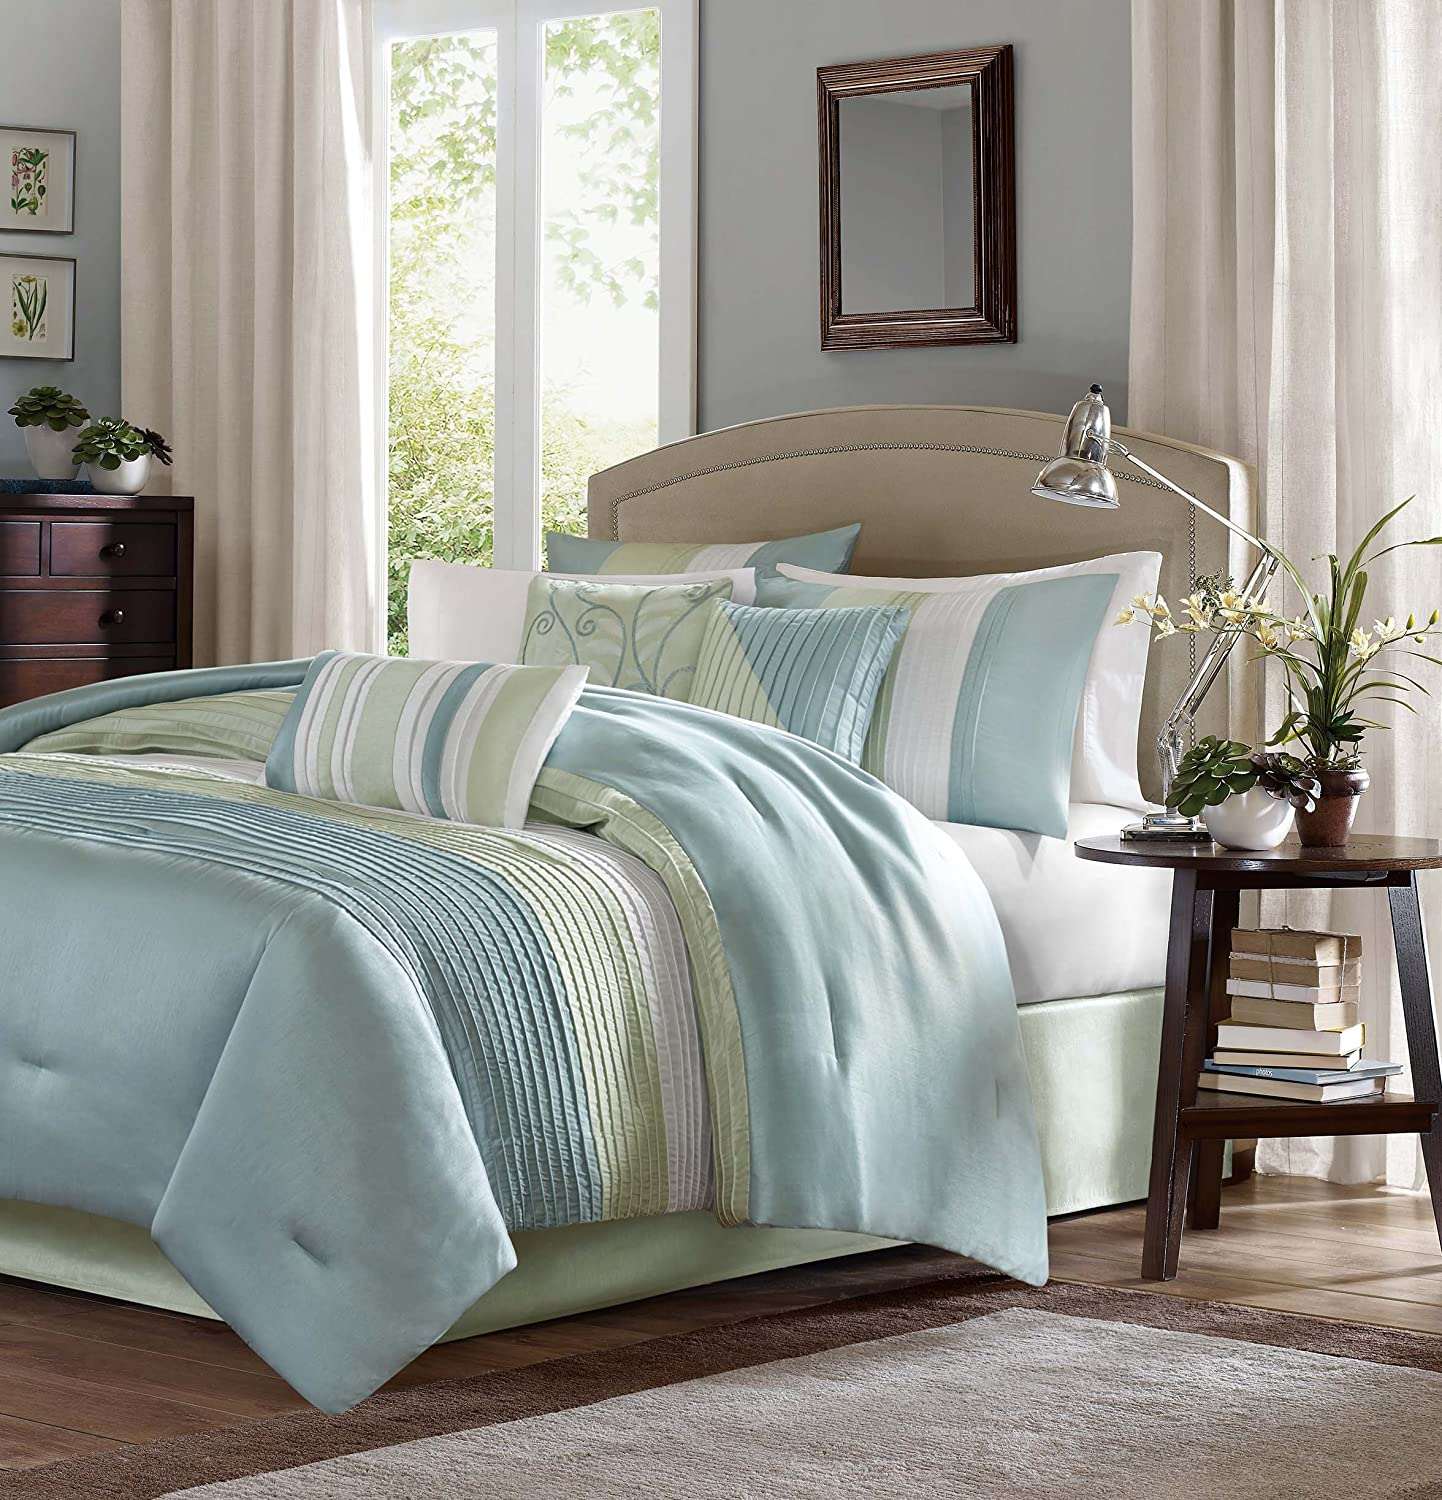 Madison Park Carter Comforter Set, King, Green